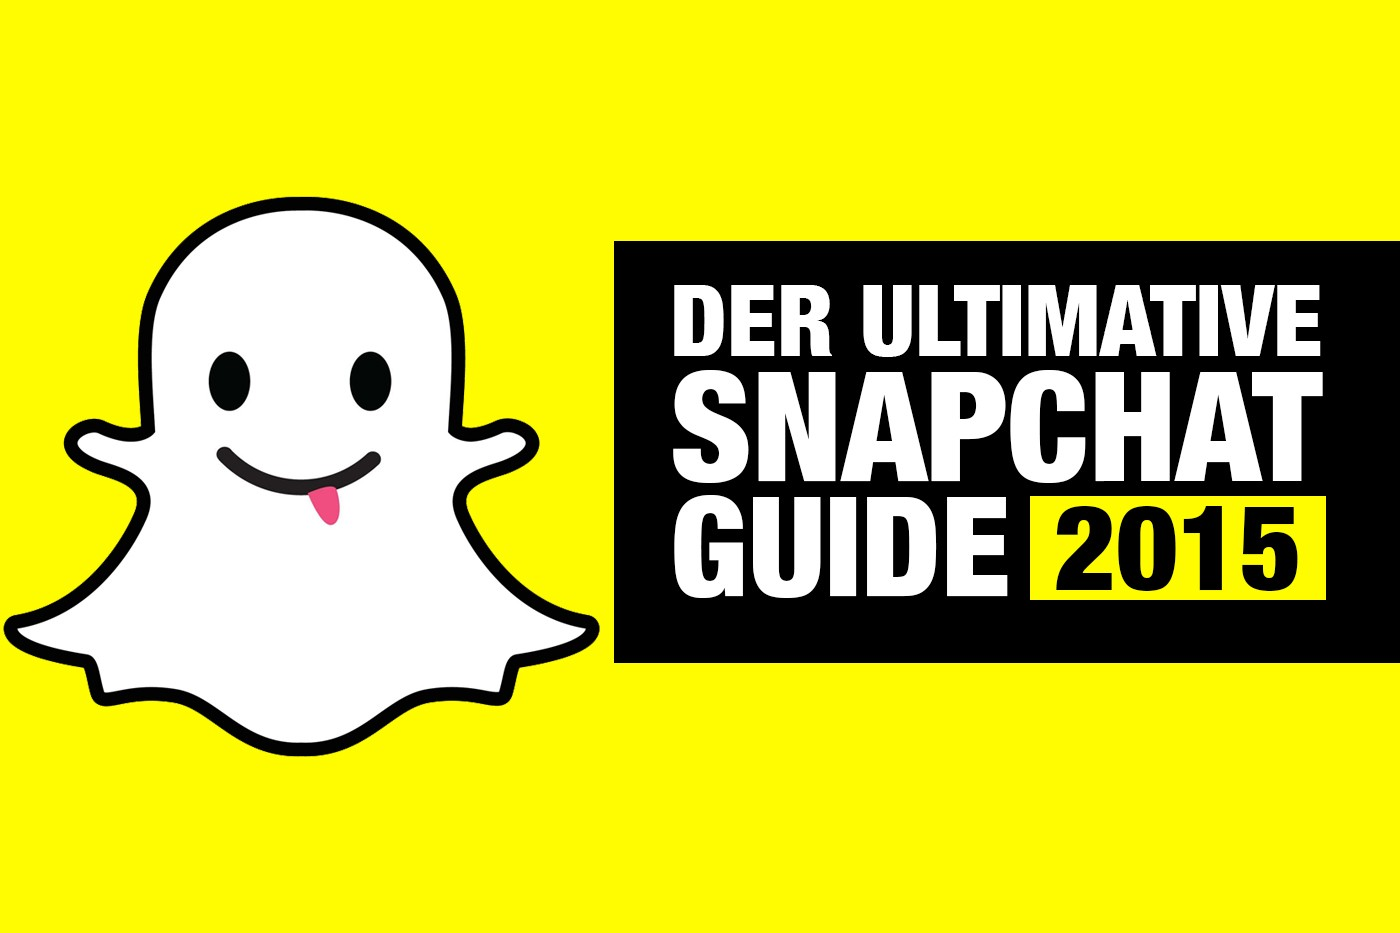 Der ultimate Snapchat Guide – So funktioniert Snapchat!